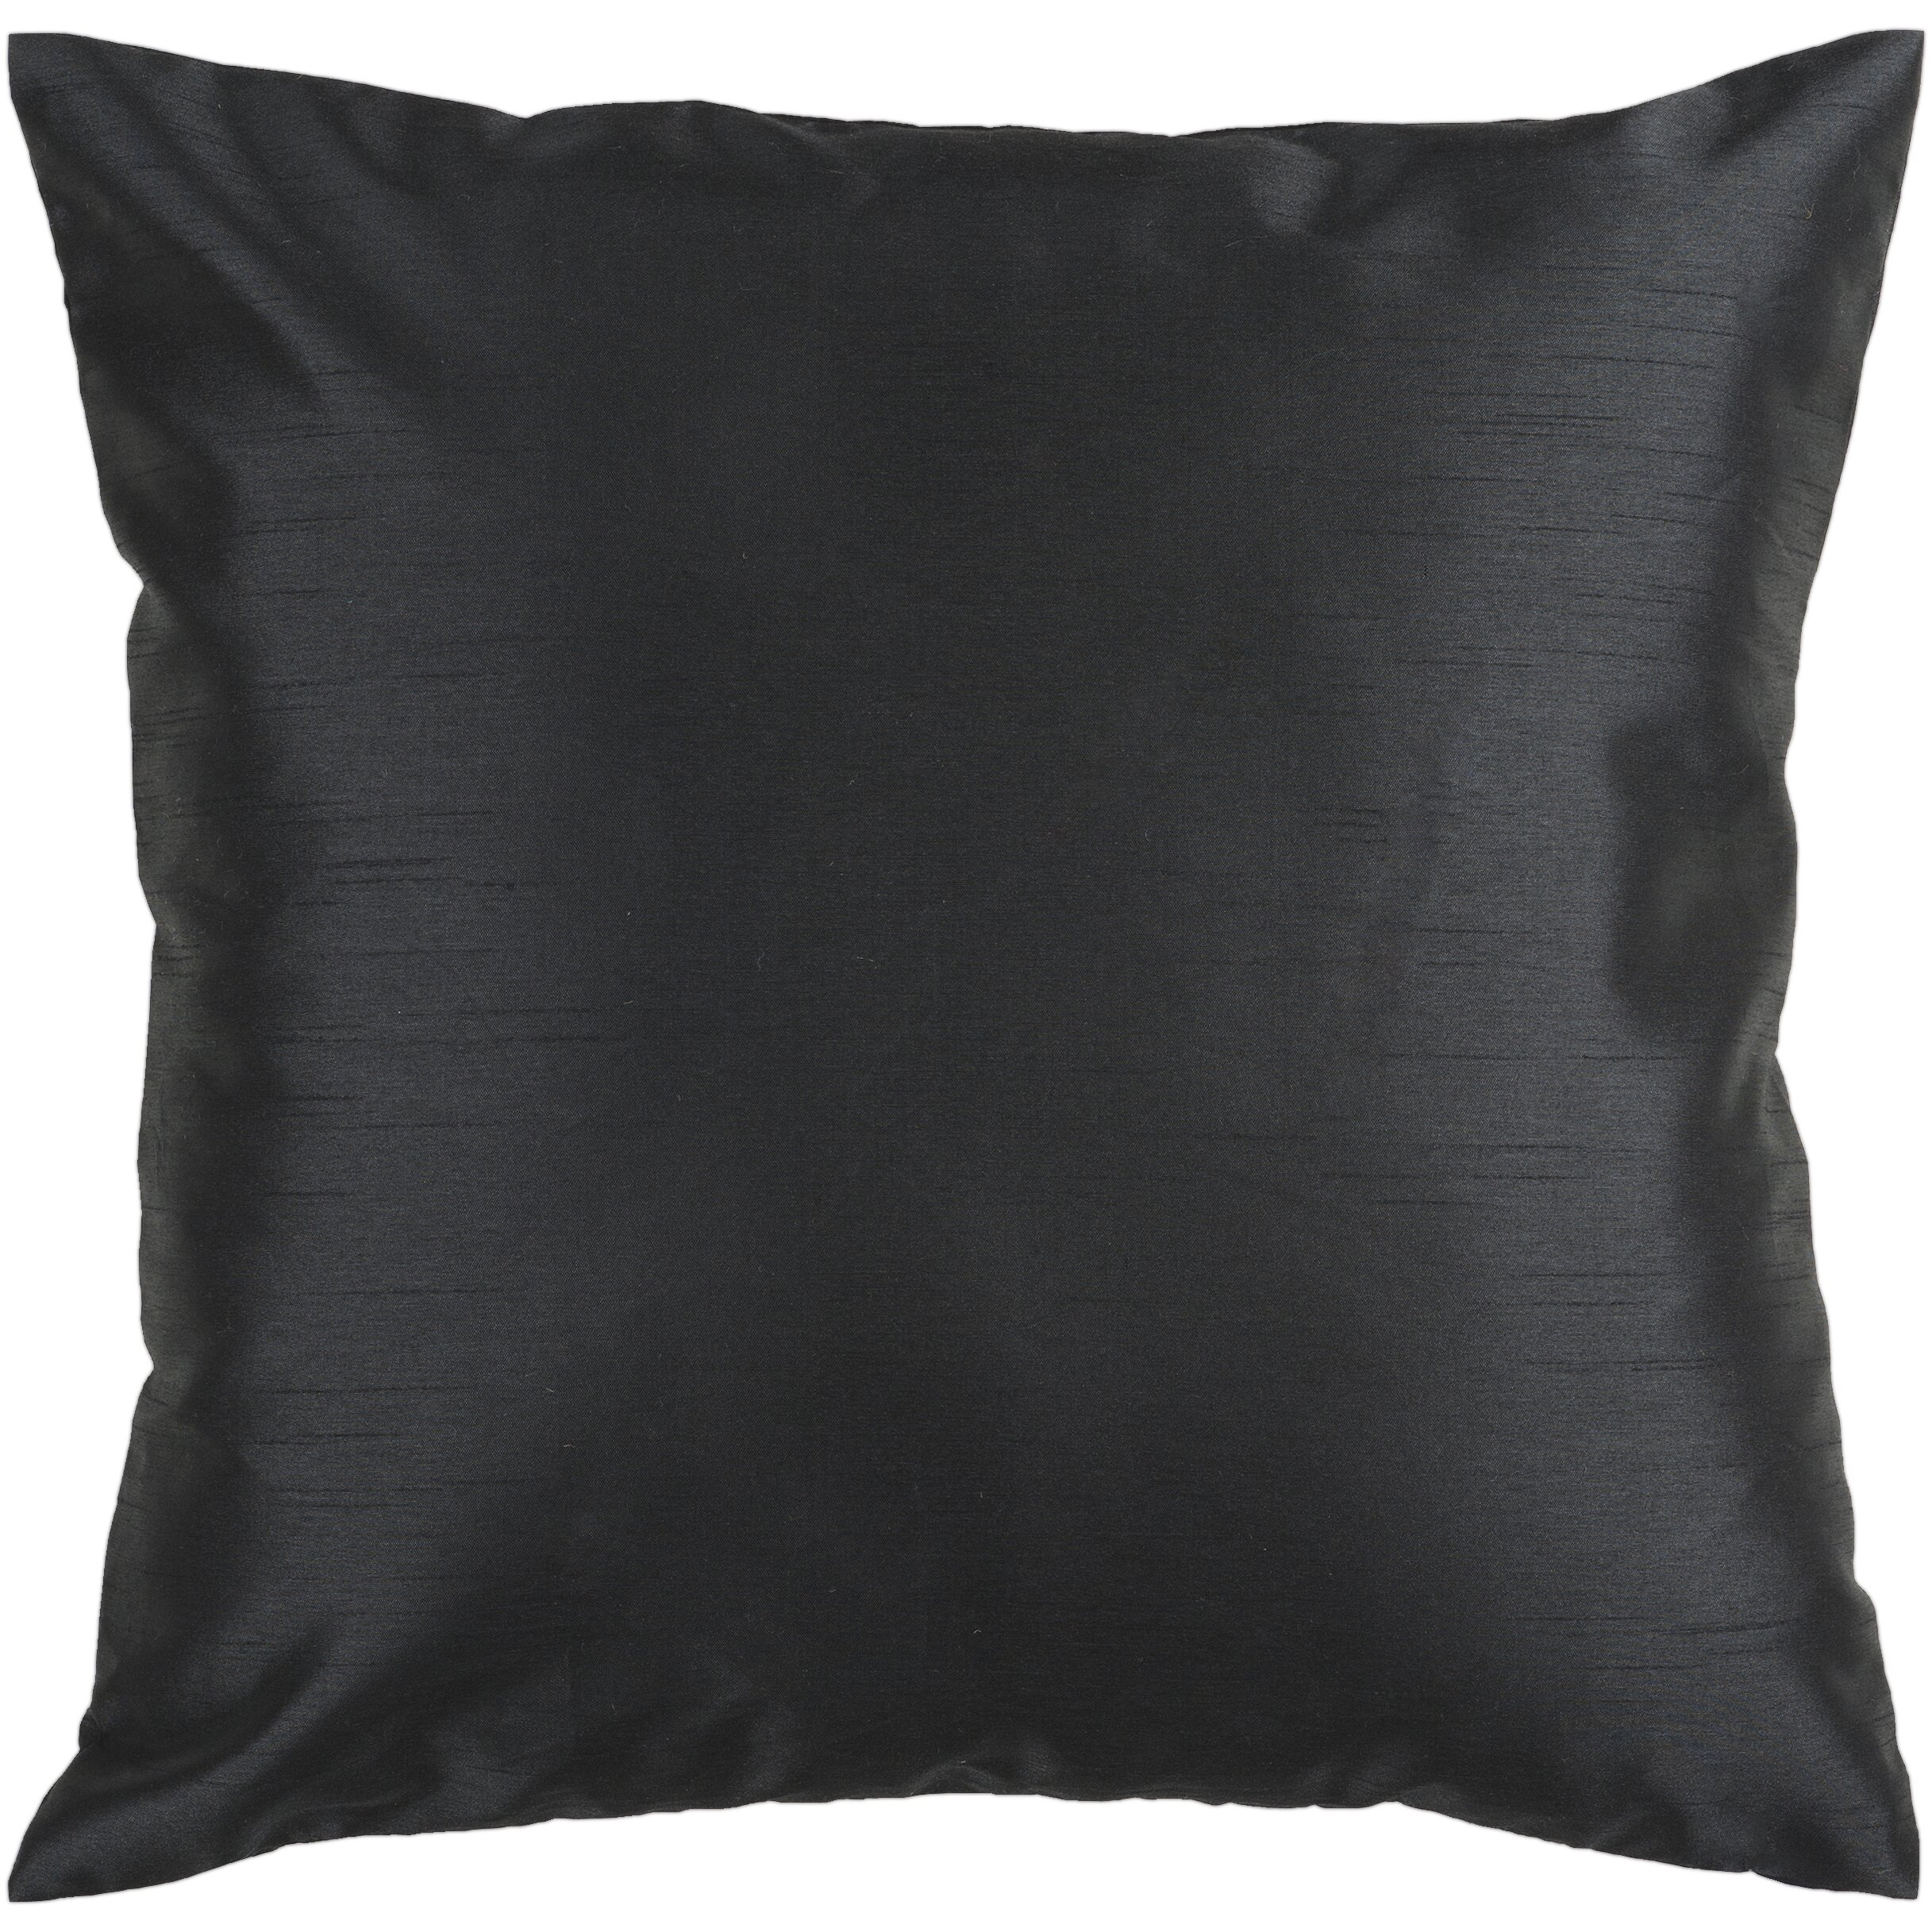 Astoria Grand Appley Solid Luxe Synthetic Throw Pillow & Reviews Wayfair